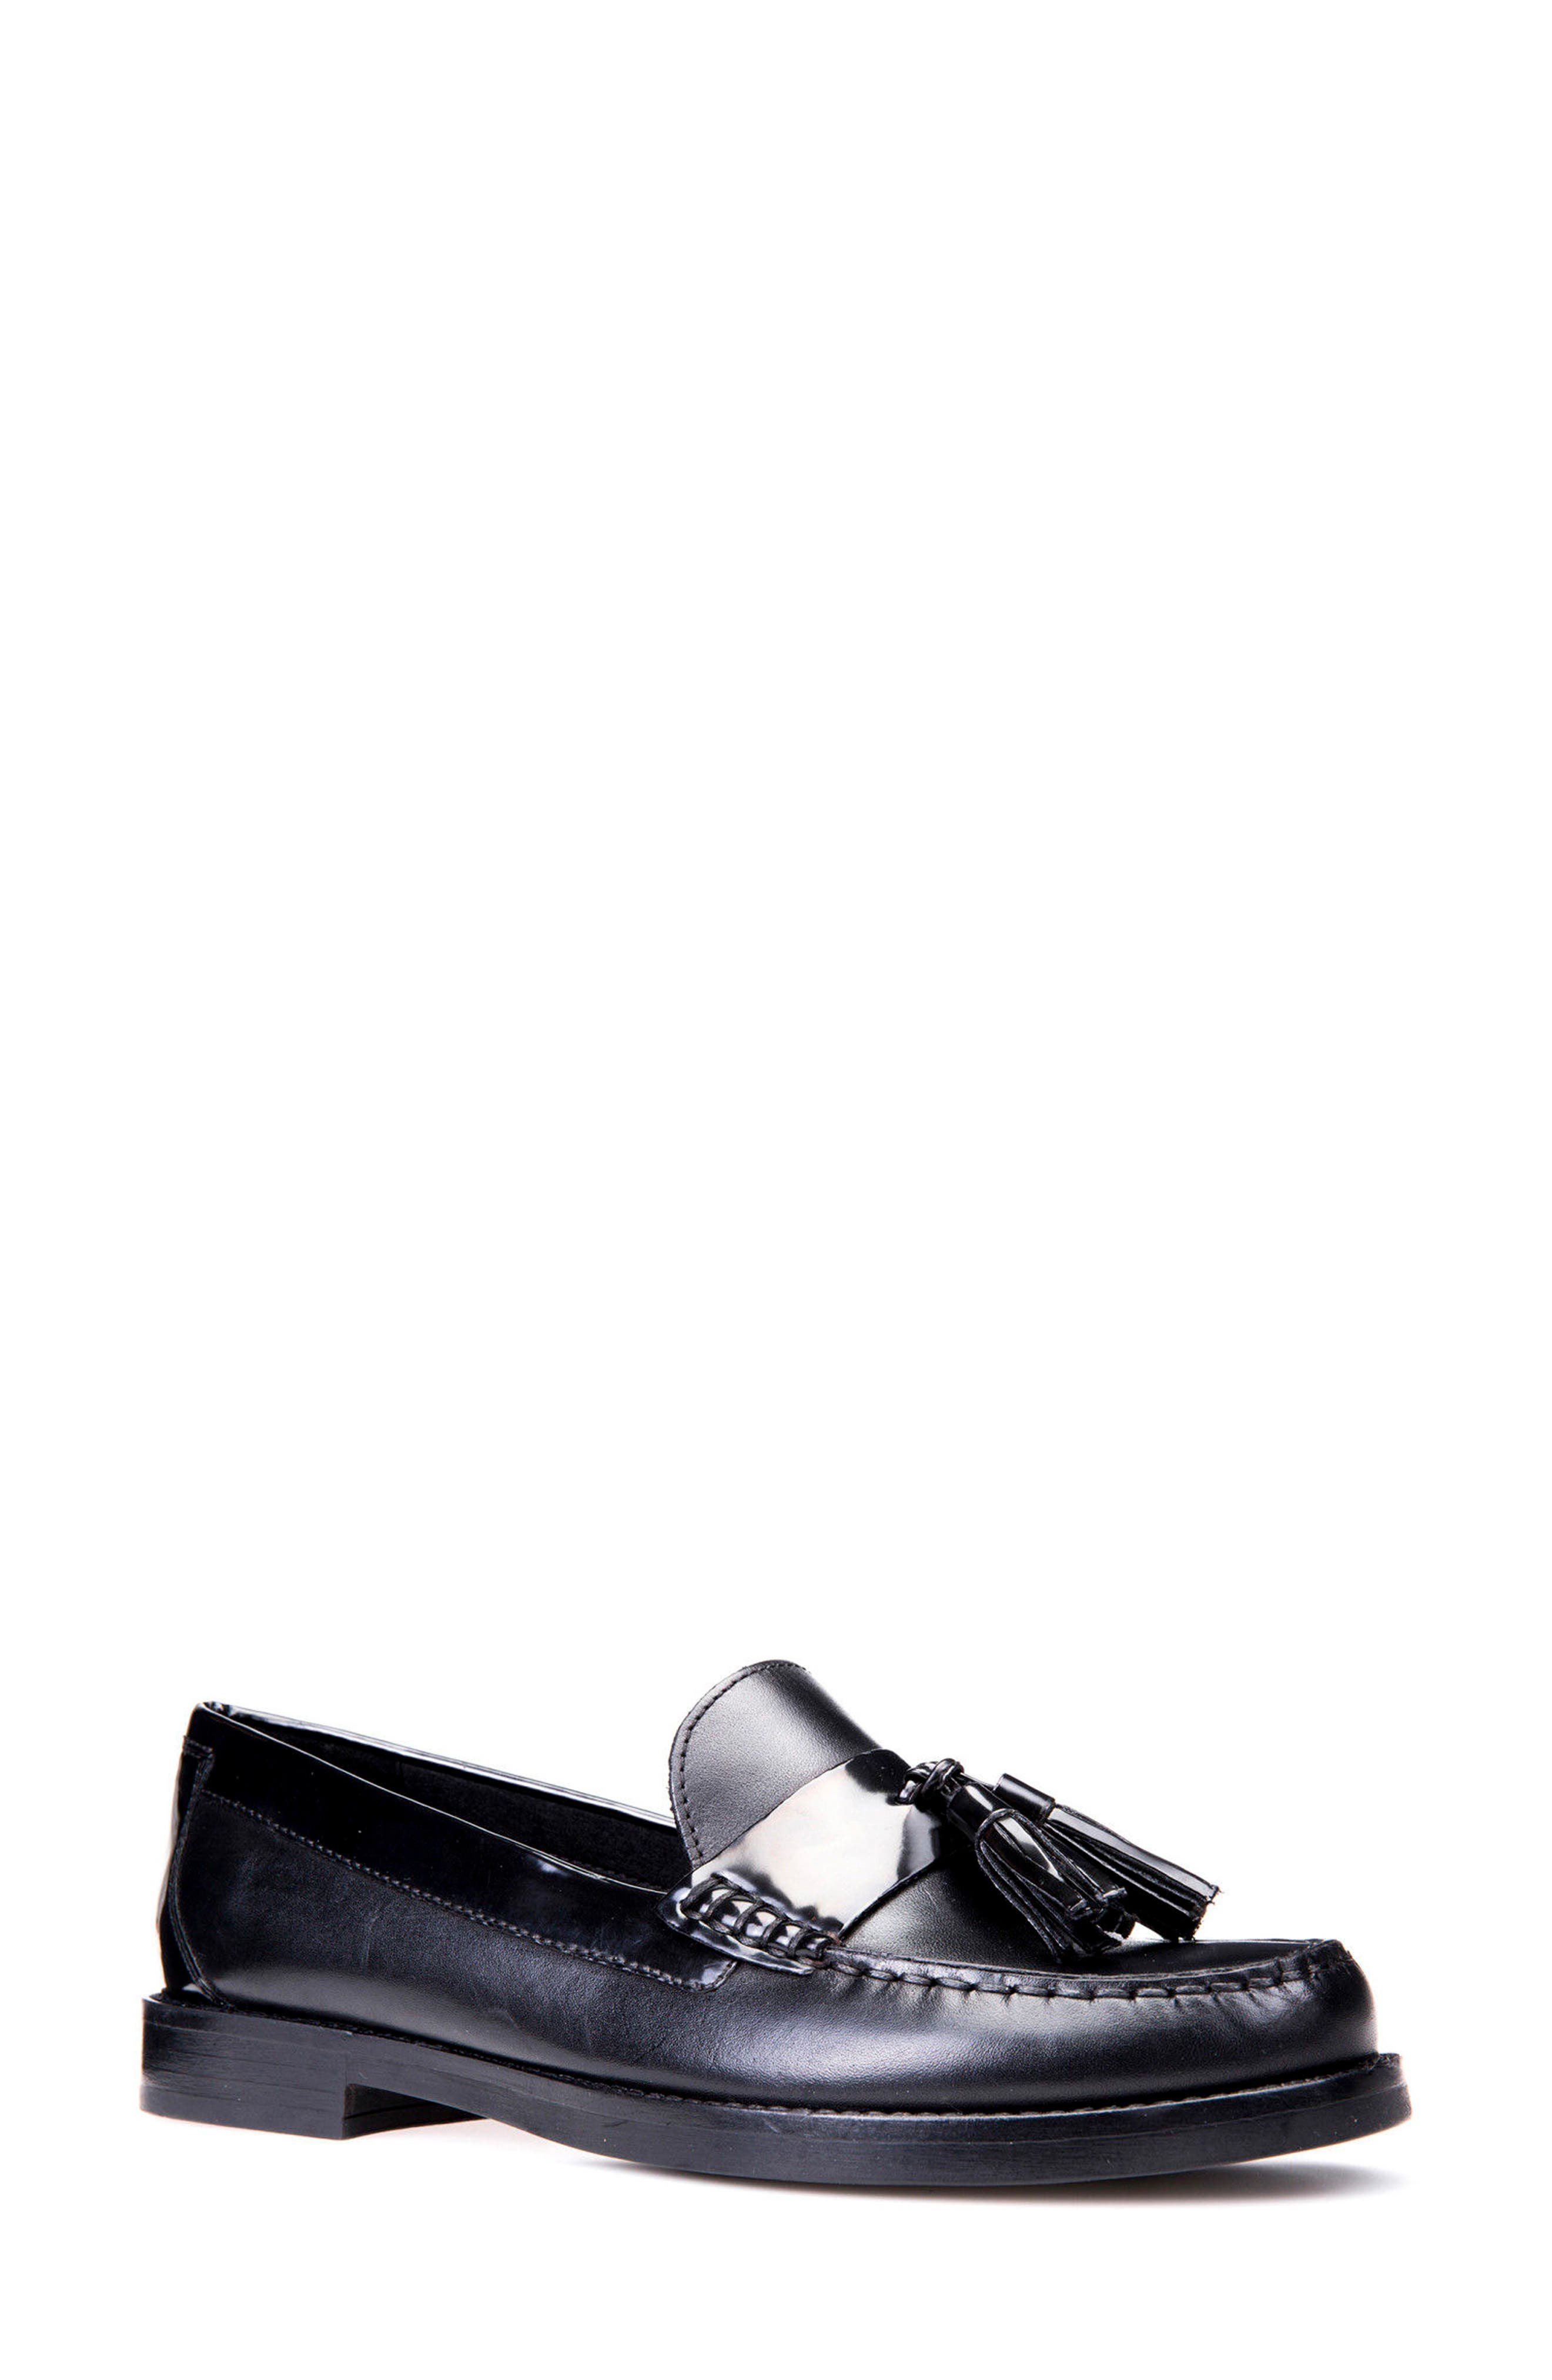 Main Image - Geox Promethea Loafer (Women)